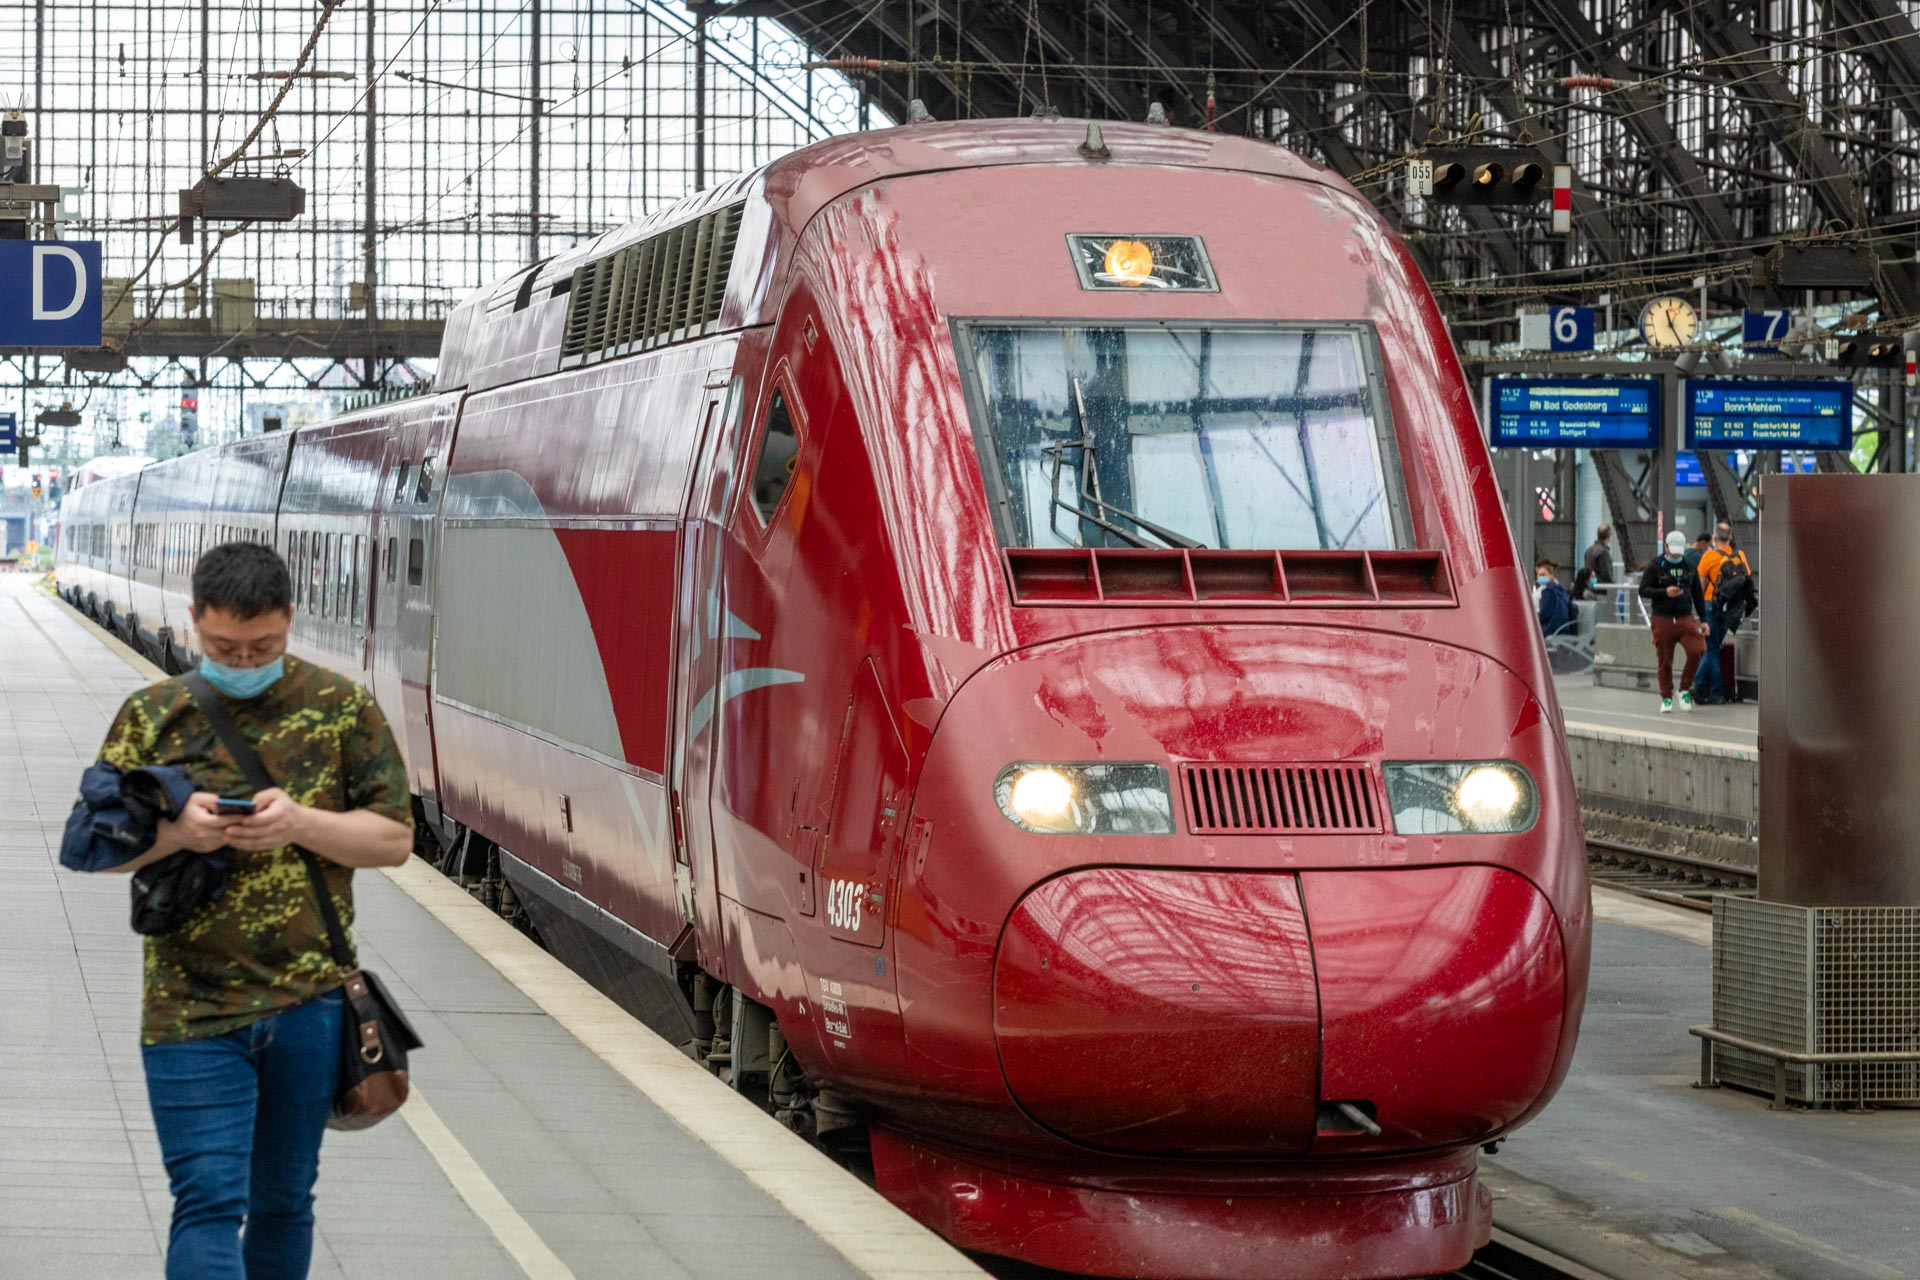 Railtech.com: Ricardo Certification successfully completed Thalys tests with ERTMS Baseline 3